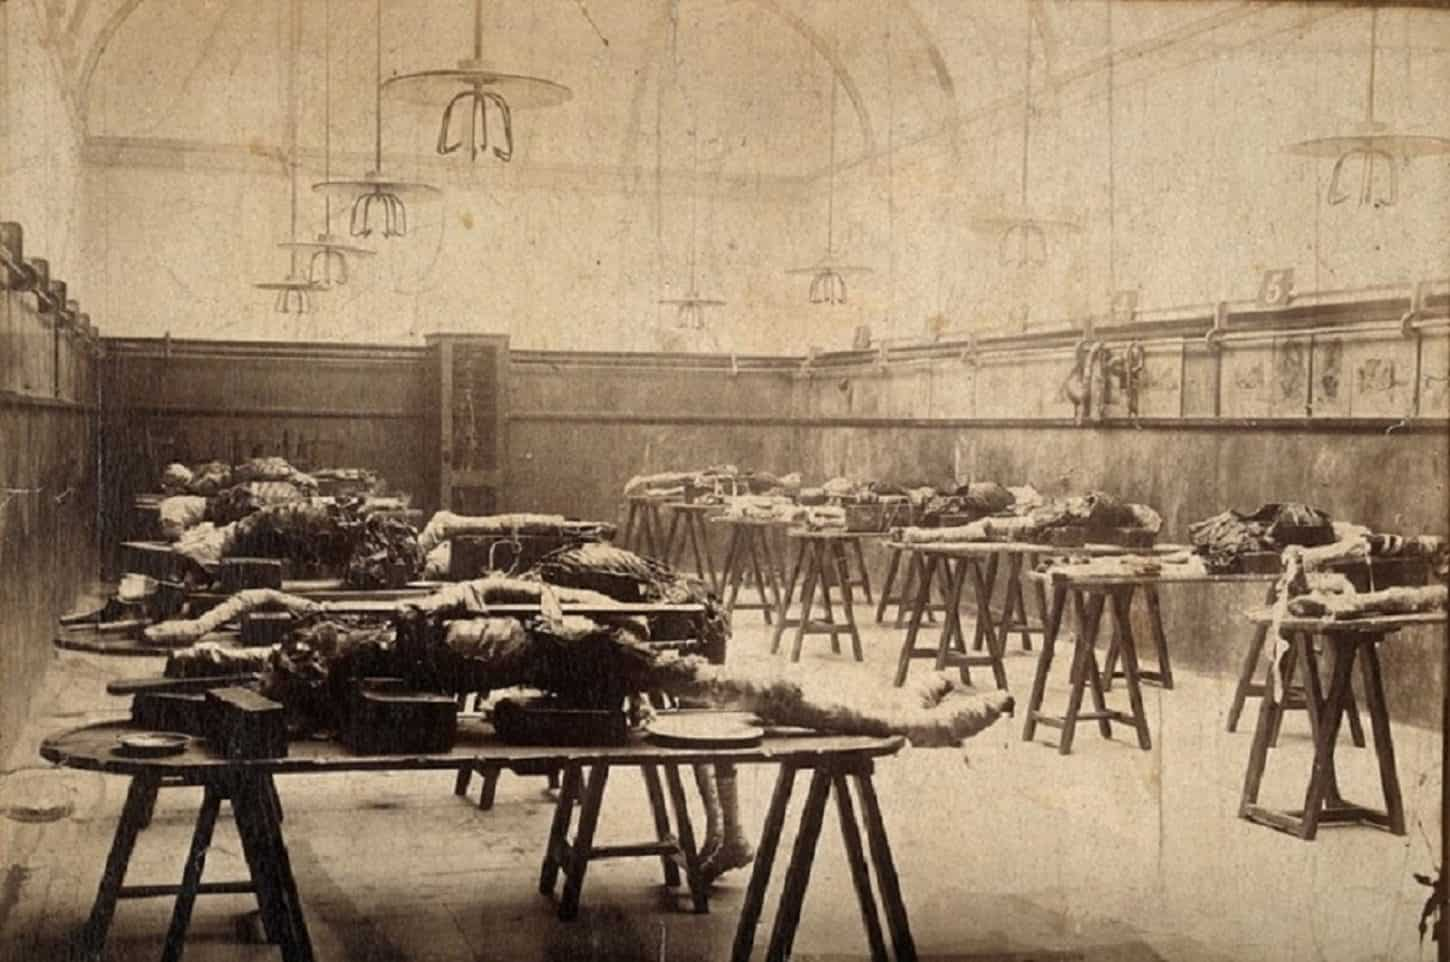 The interior of a hospital dissecting room in London, with lines of cadavers on benches